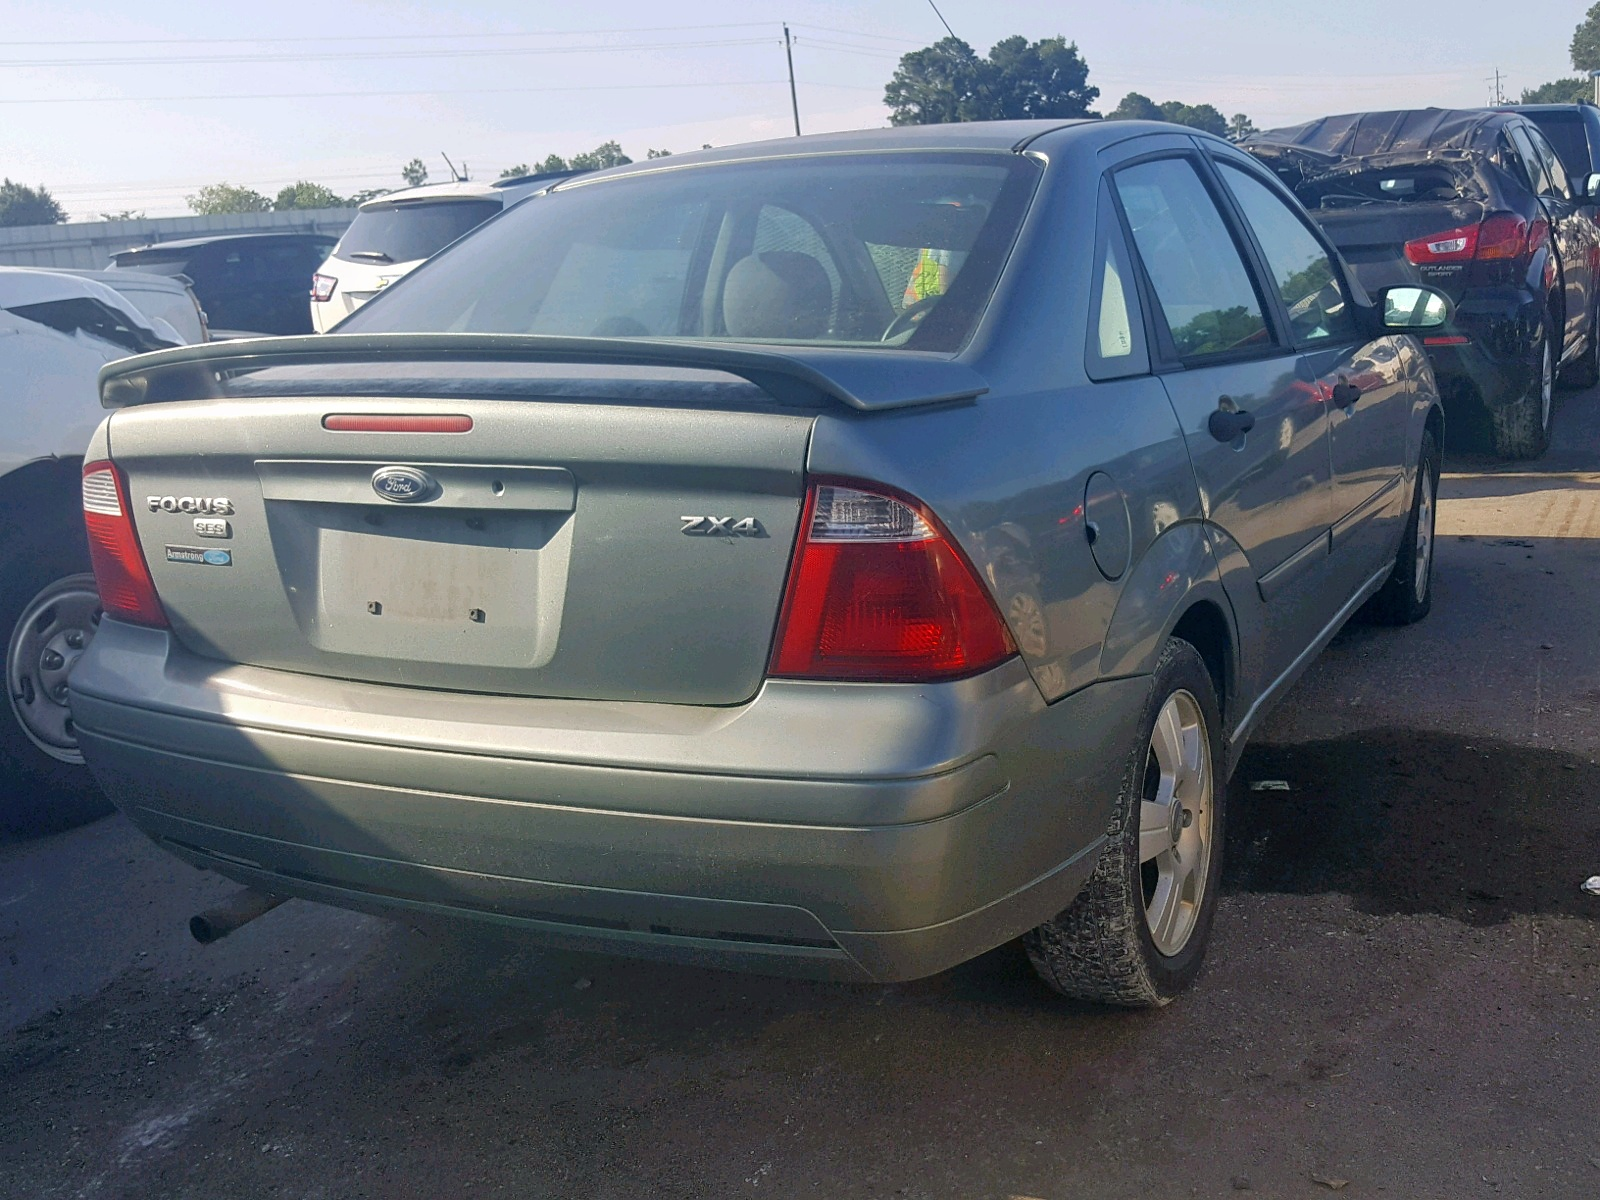 2005 Ford Focus Zx4 2.0L rear view